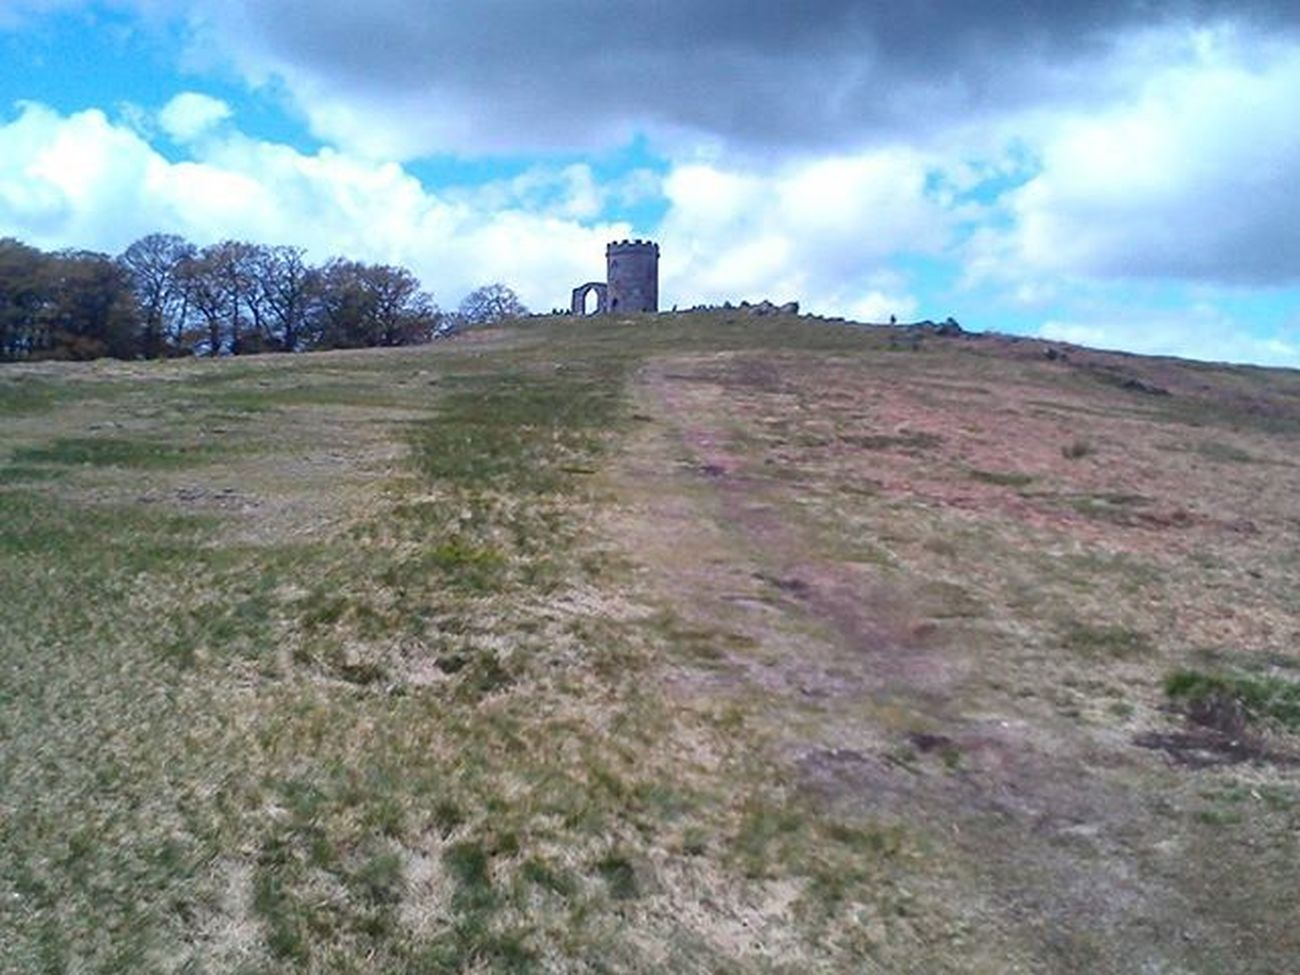 So I was look through my old photos I took on my old phone(Xperia Miro St23i)and look what I found🙌. A photo I took when I first went to Bradgate Park. Sky Skylovers Skyblue Bluesky Skyandclouds  Skycollection Bradgatepark Myleicester Landscape Landscapes Landscapephotography Throwback Tb Landscape_captures Landscapelovers Tress Beauty Beautiful Beautyofnature Naturelovers Nature Naturephotography Beautifulday Photo Shots walk phonephotography clouds amazing cool